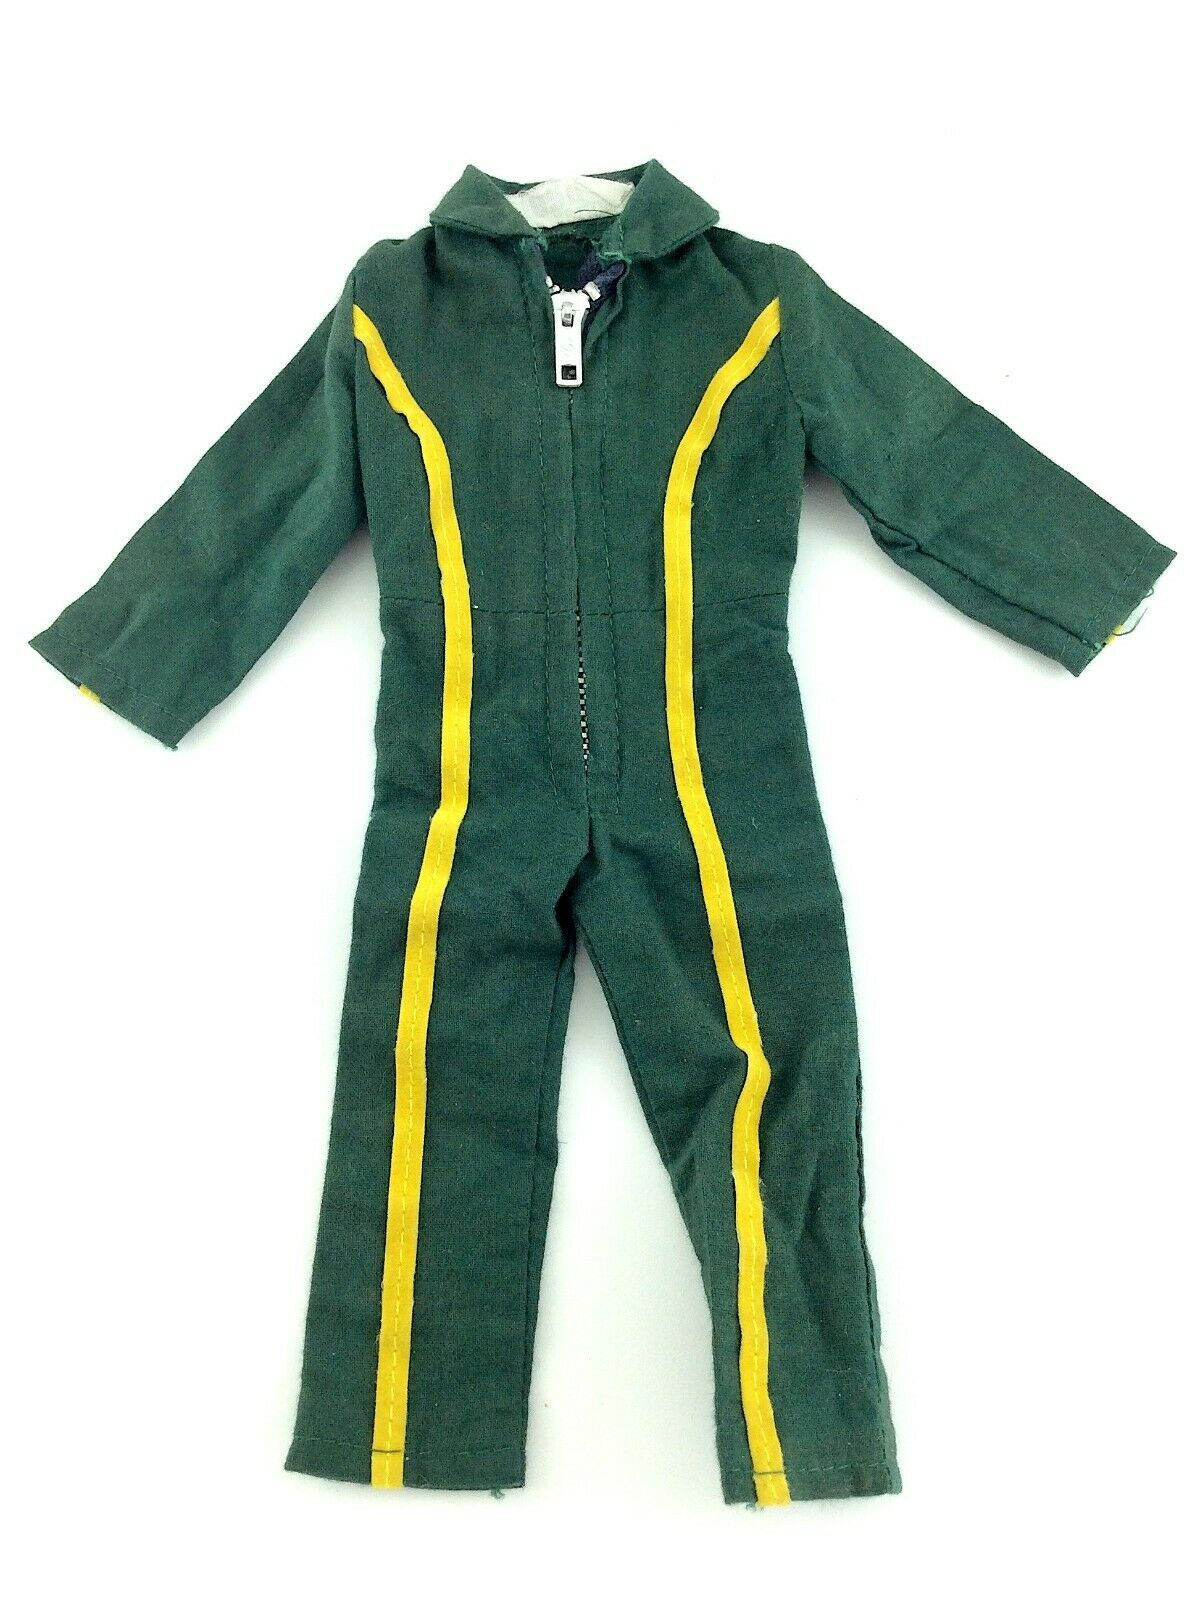 Jumpsuit Grün With Gelb Stripes Palitoy Action Man UK Helicopter Pilot L570